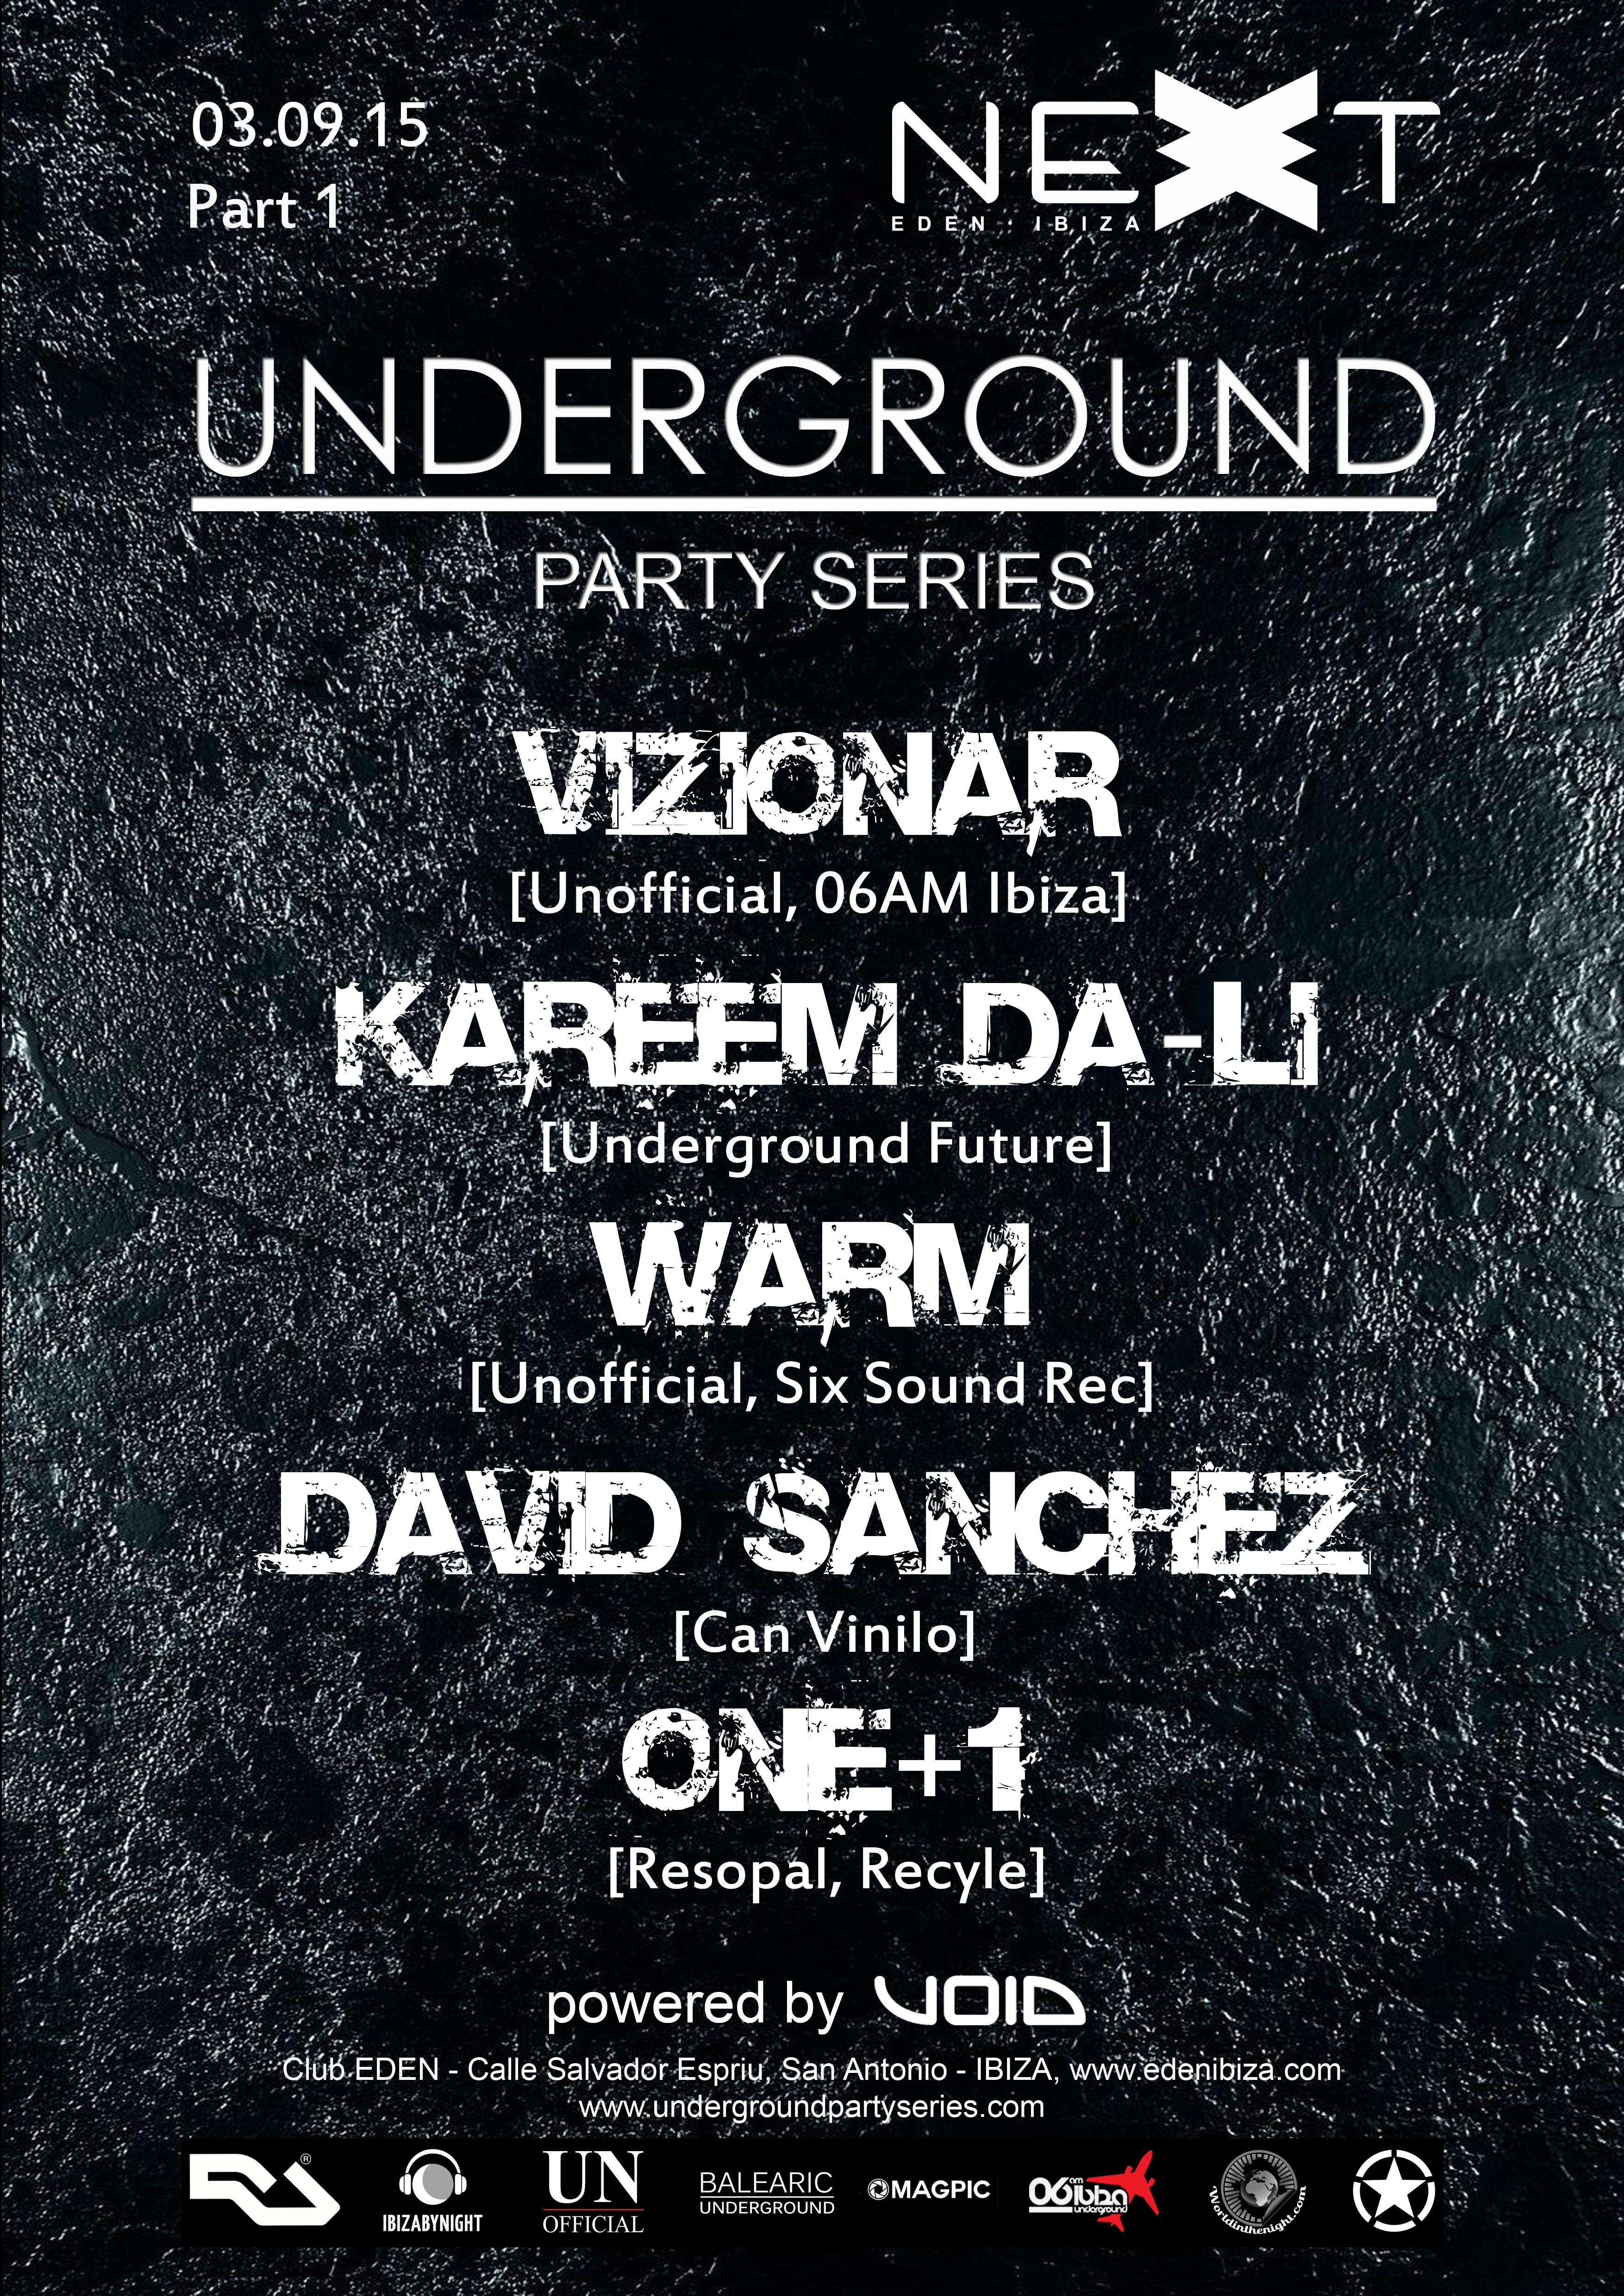 Underground Party Series